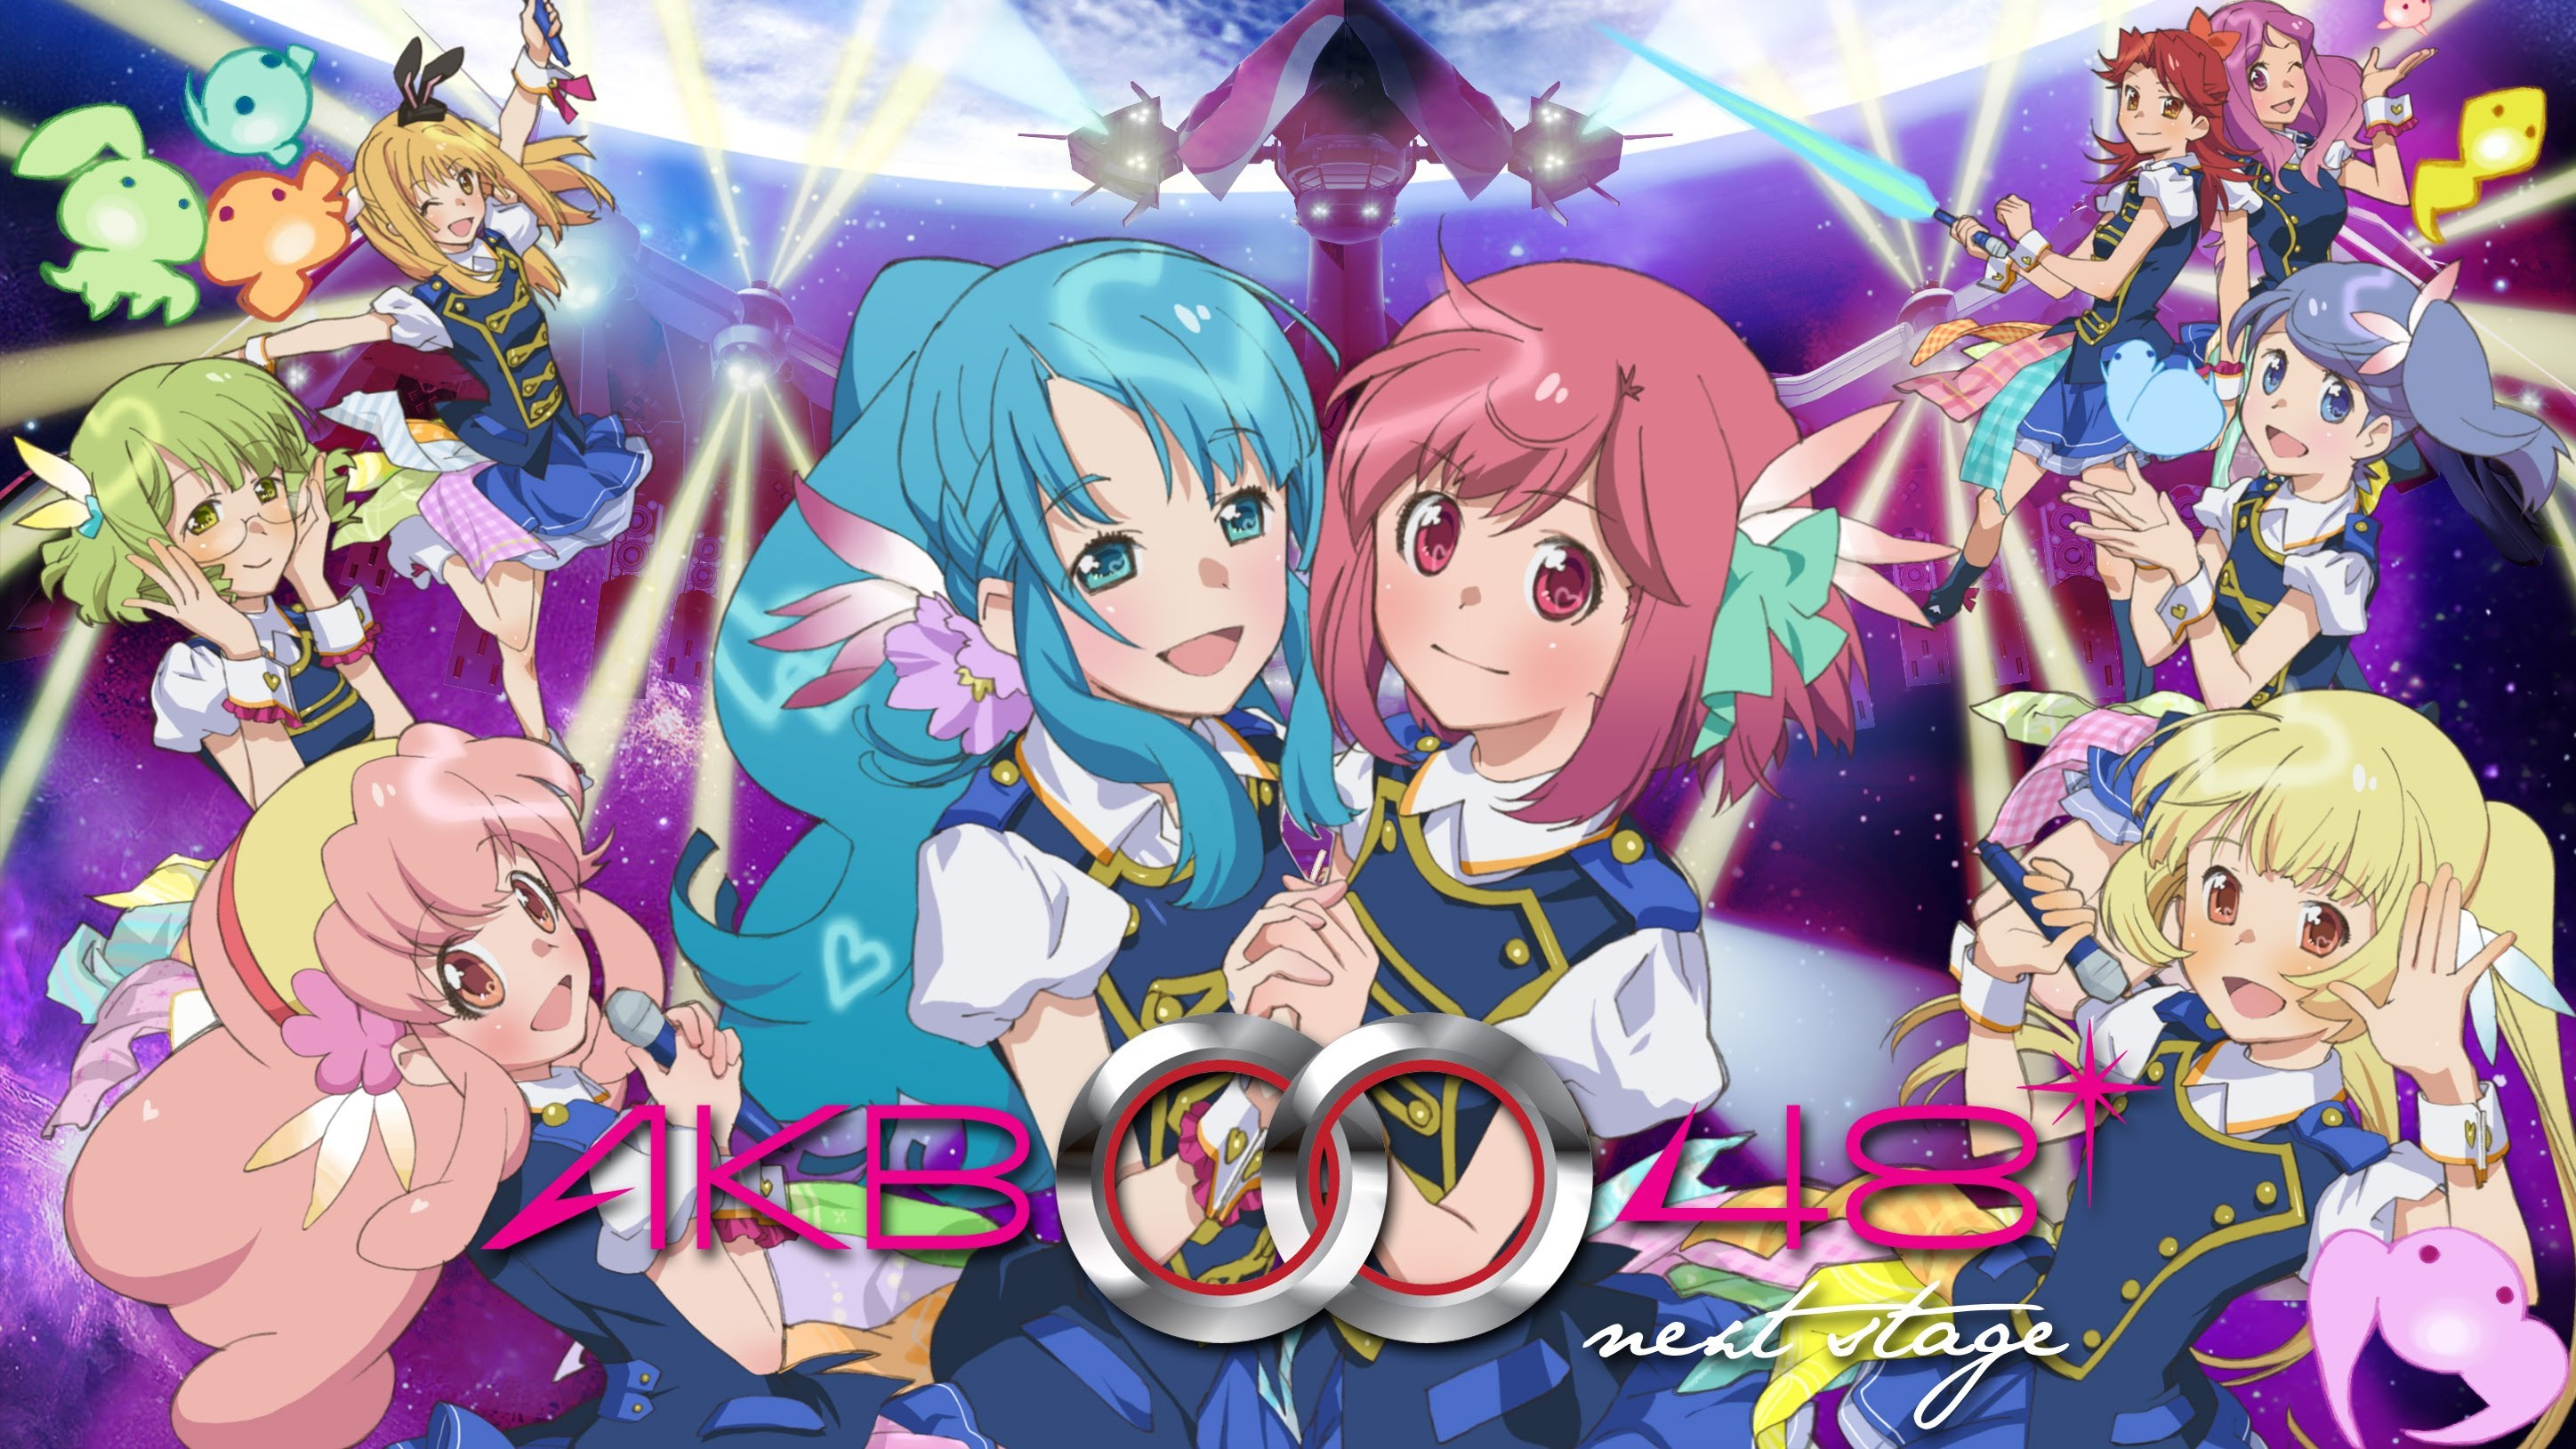 Akb0048: First Stage - AKB0048 First Stage